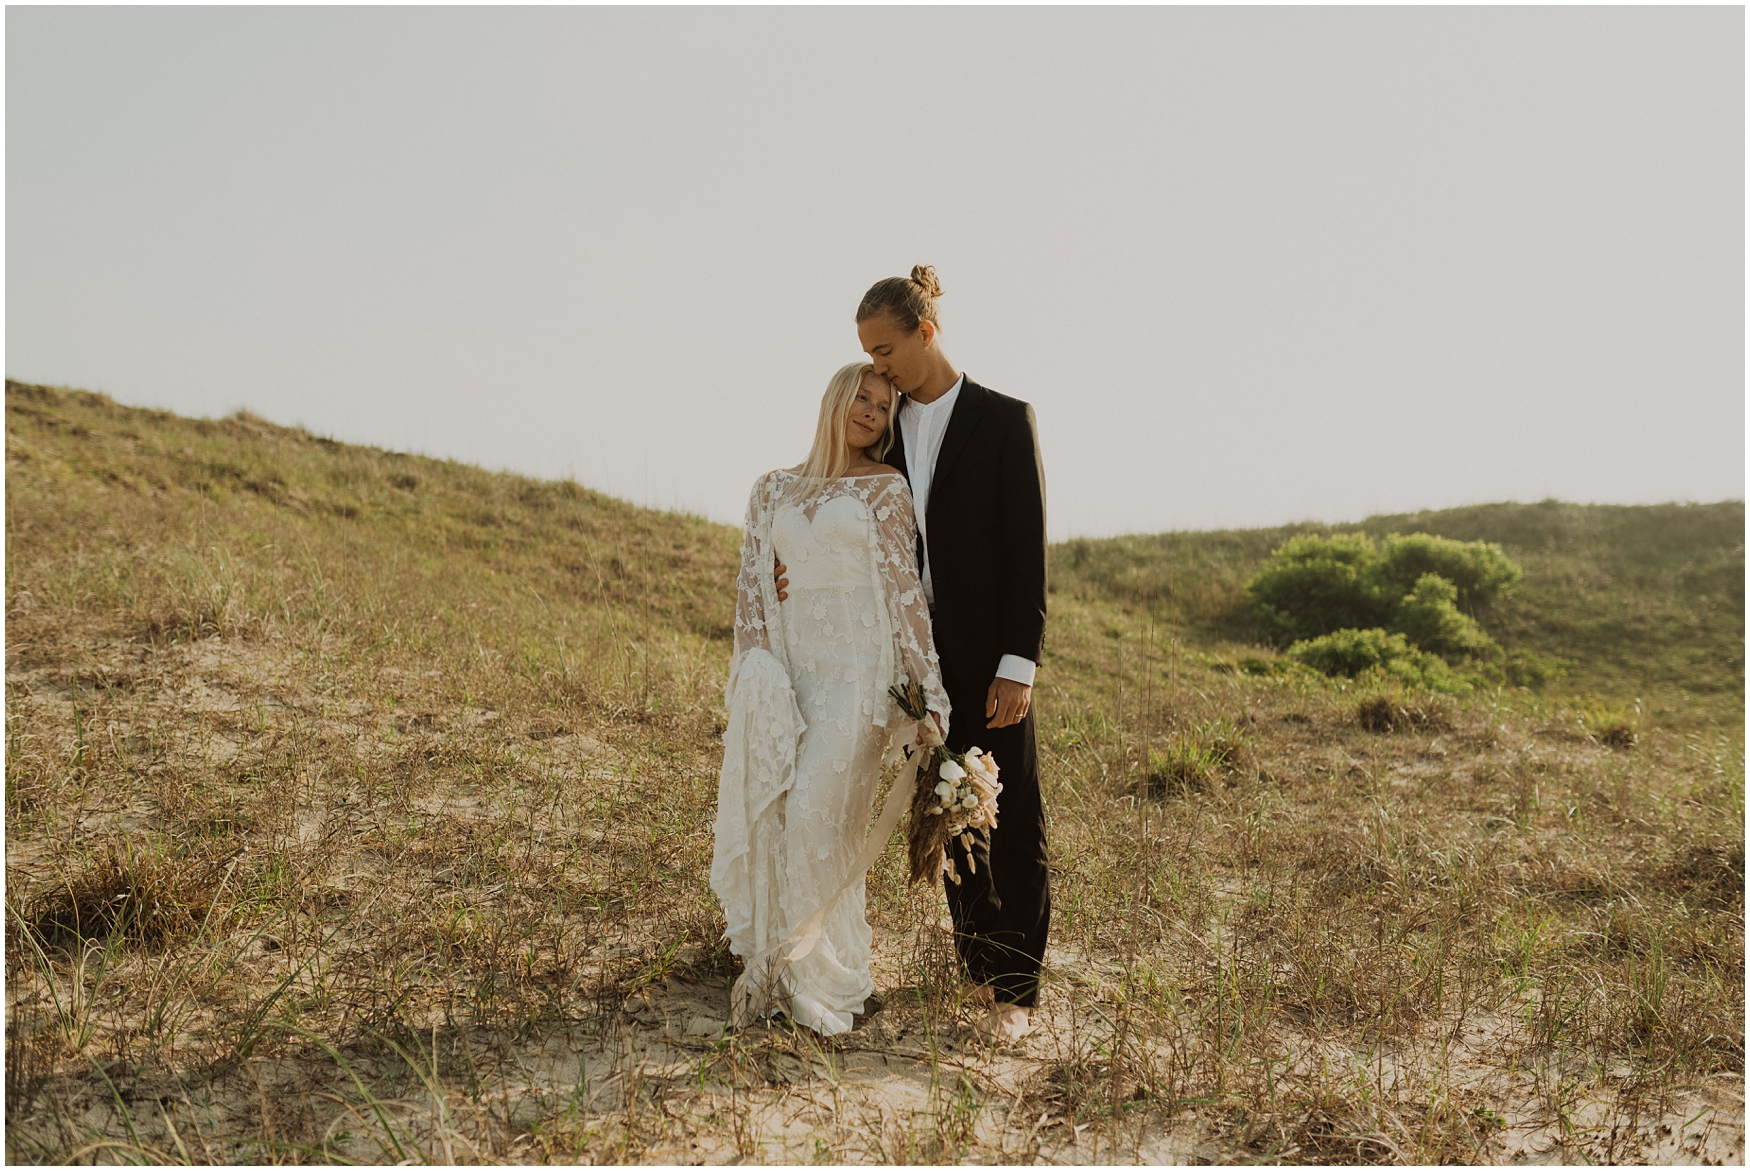 Hannah_Baldwin_Photography_Virginia_Beach_Elopement_Sunrise_0201.jpg